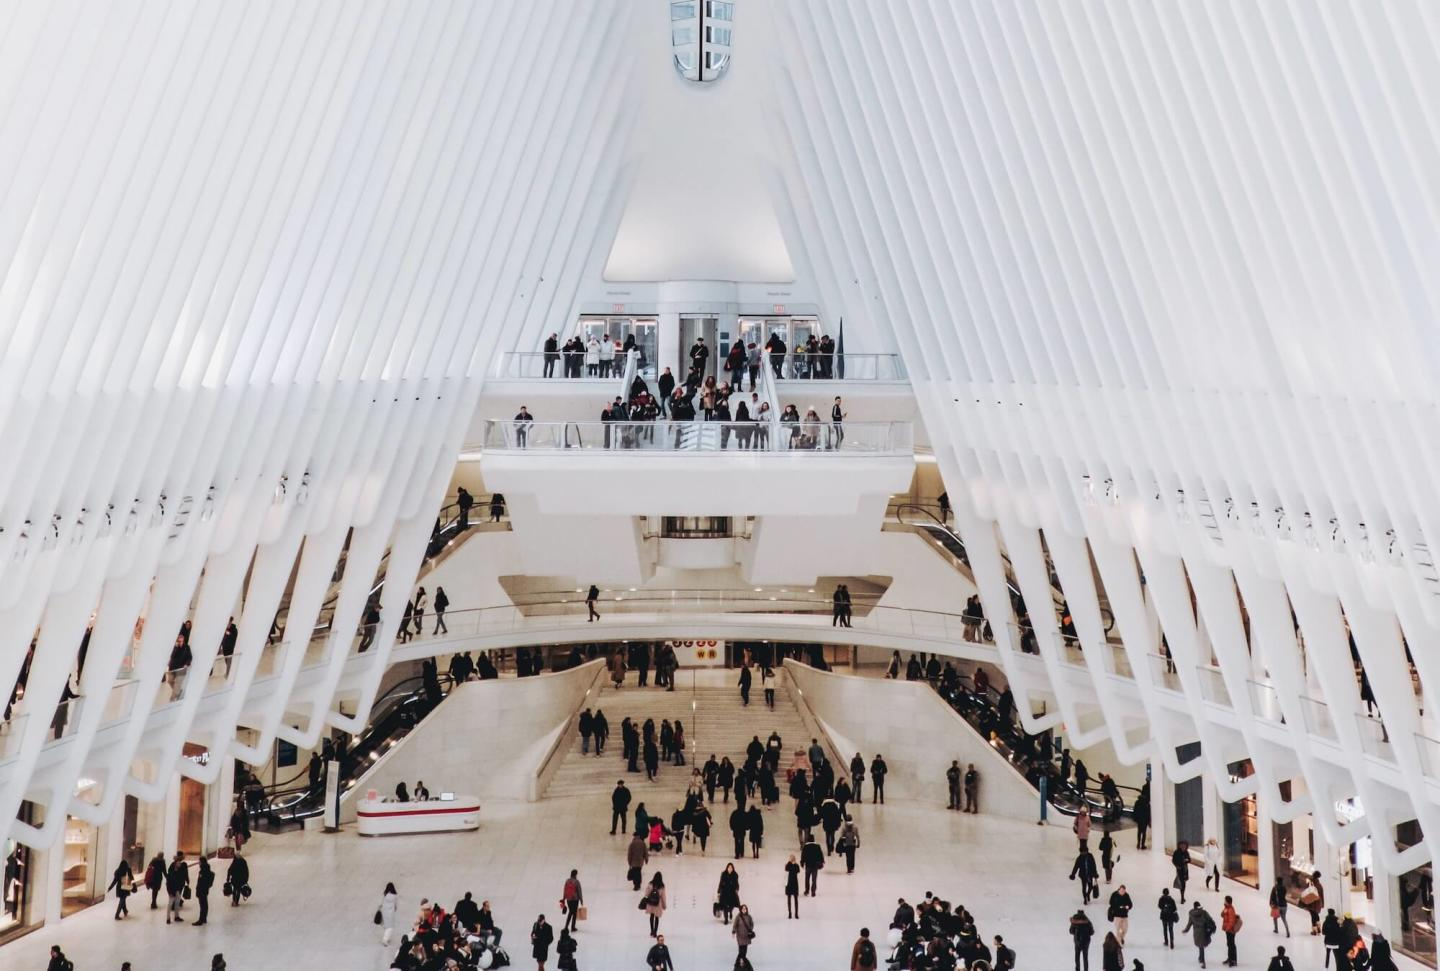 Image of The Oculus in New York City during a busy rush hour commute